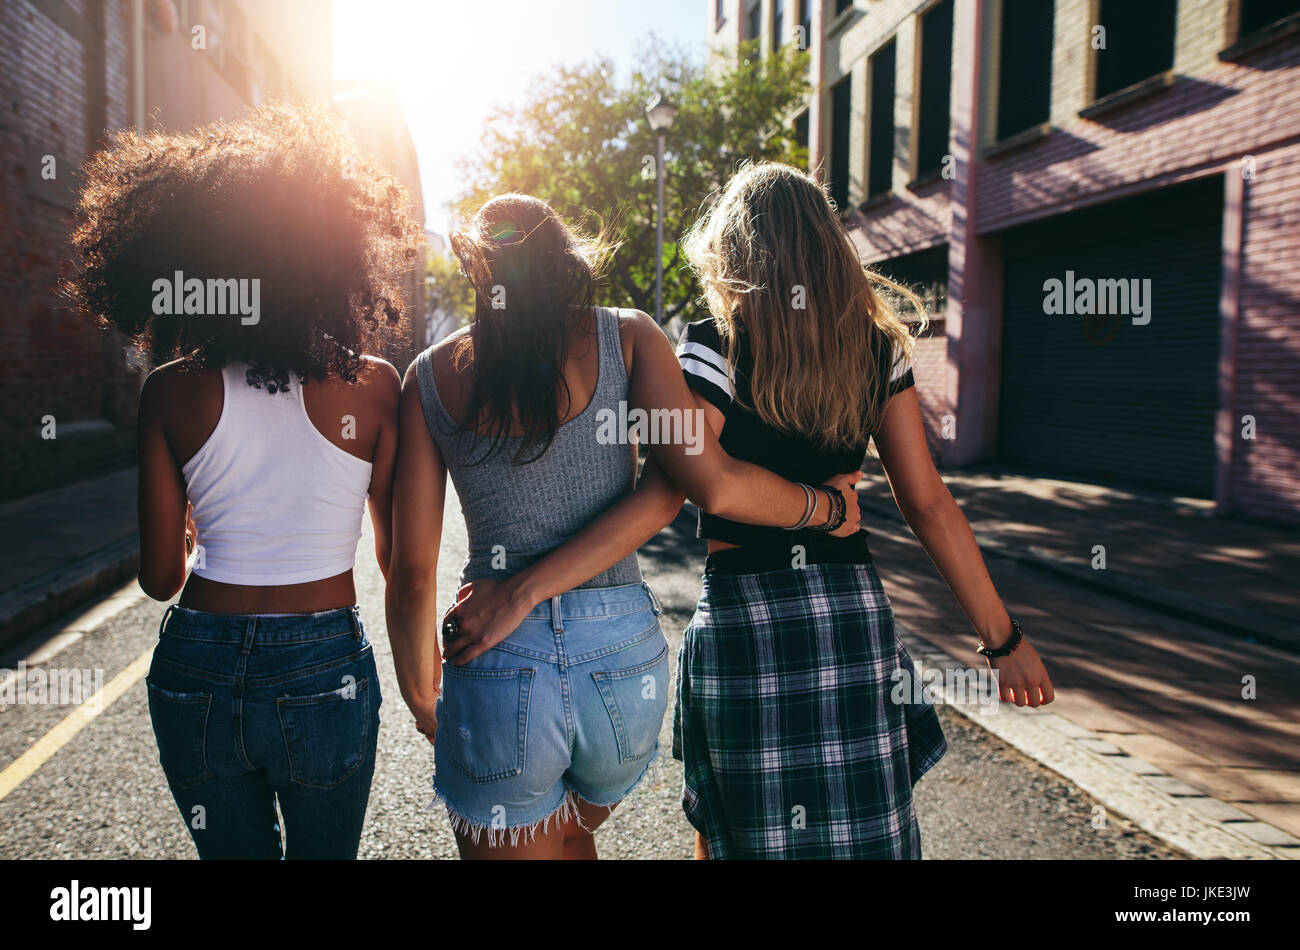 Rear view shot of three young women walking together on city street. Multiracial female friends out on the street - Stock Image